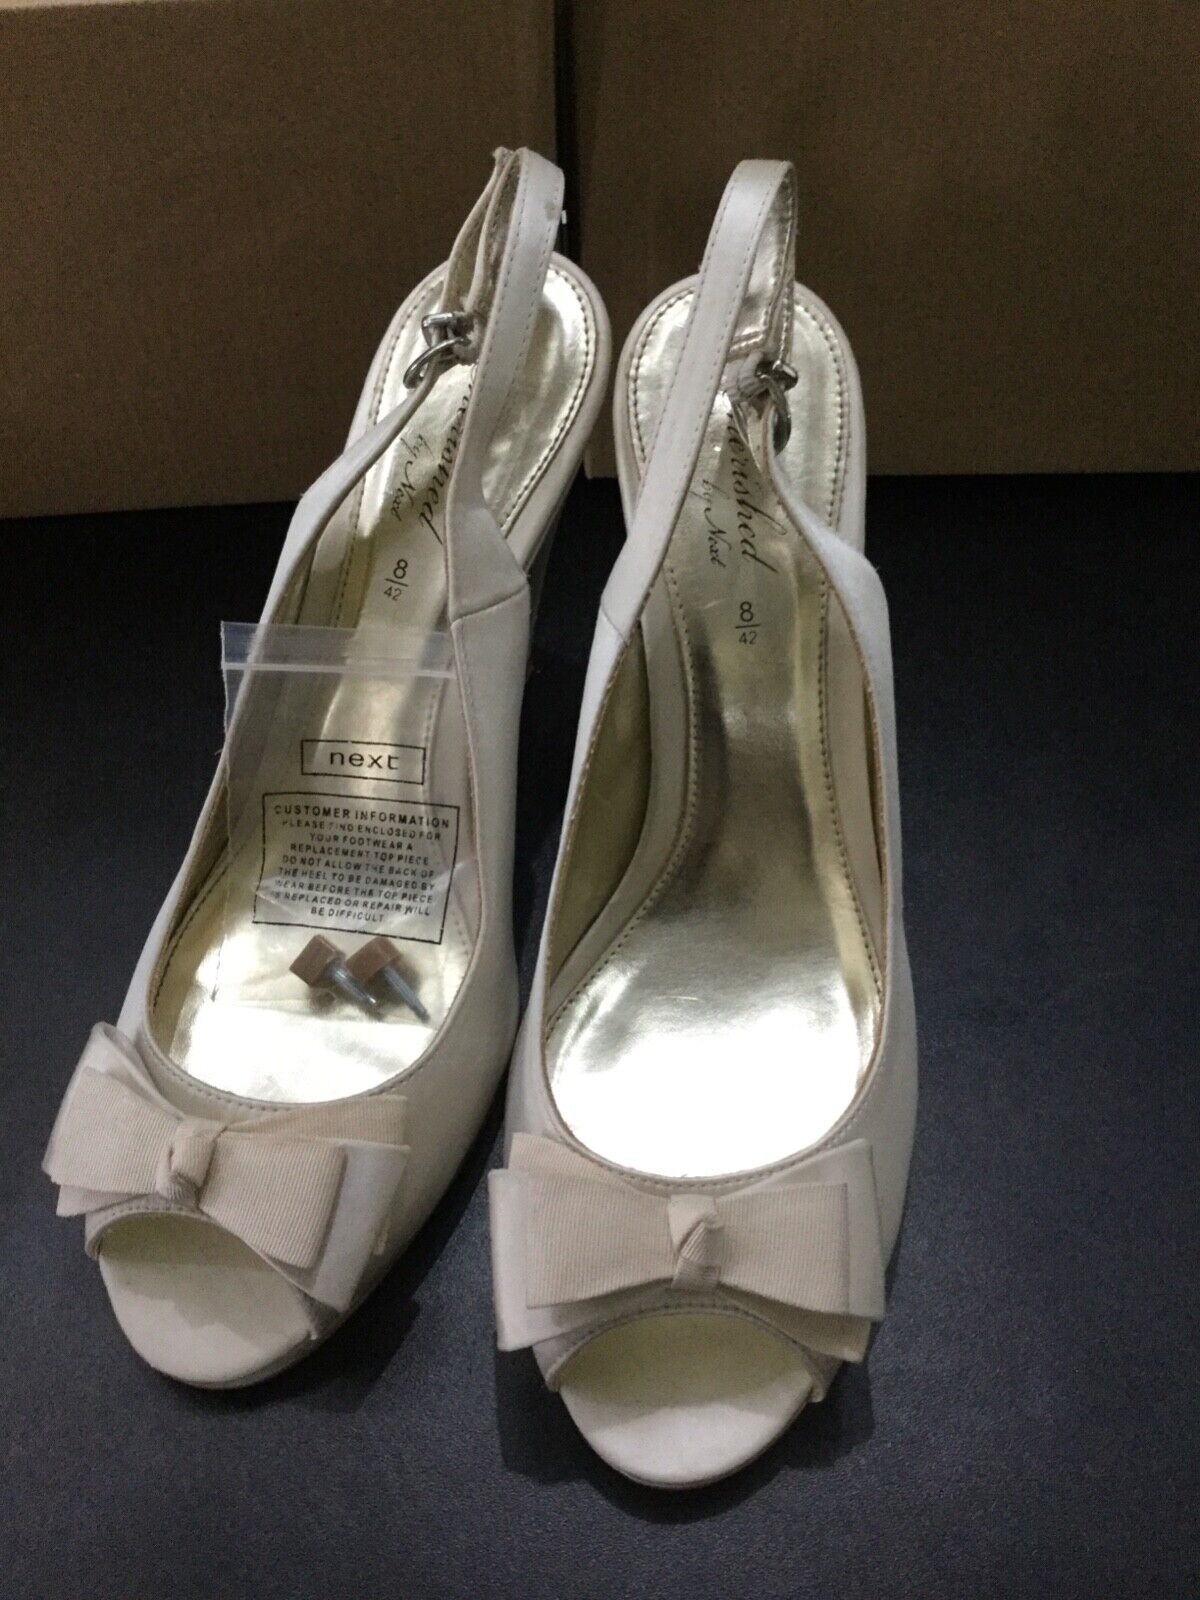 Lovely cream satin heels from Next cherished collection size 8